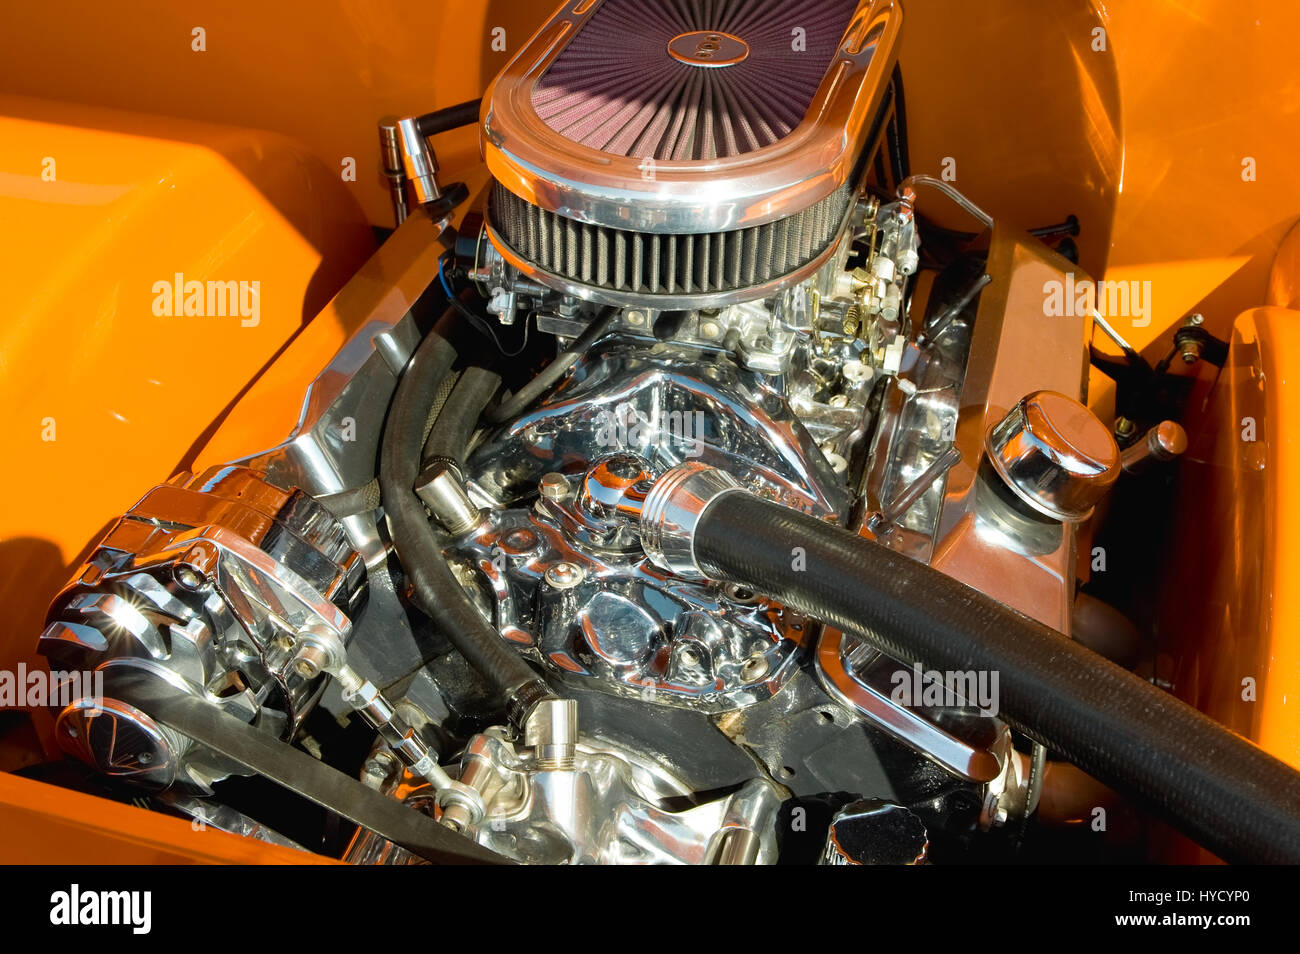 Parts Of A Hot Rod : Powerful hot rod engine bay with a large number of chromed